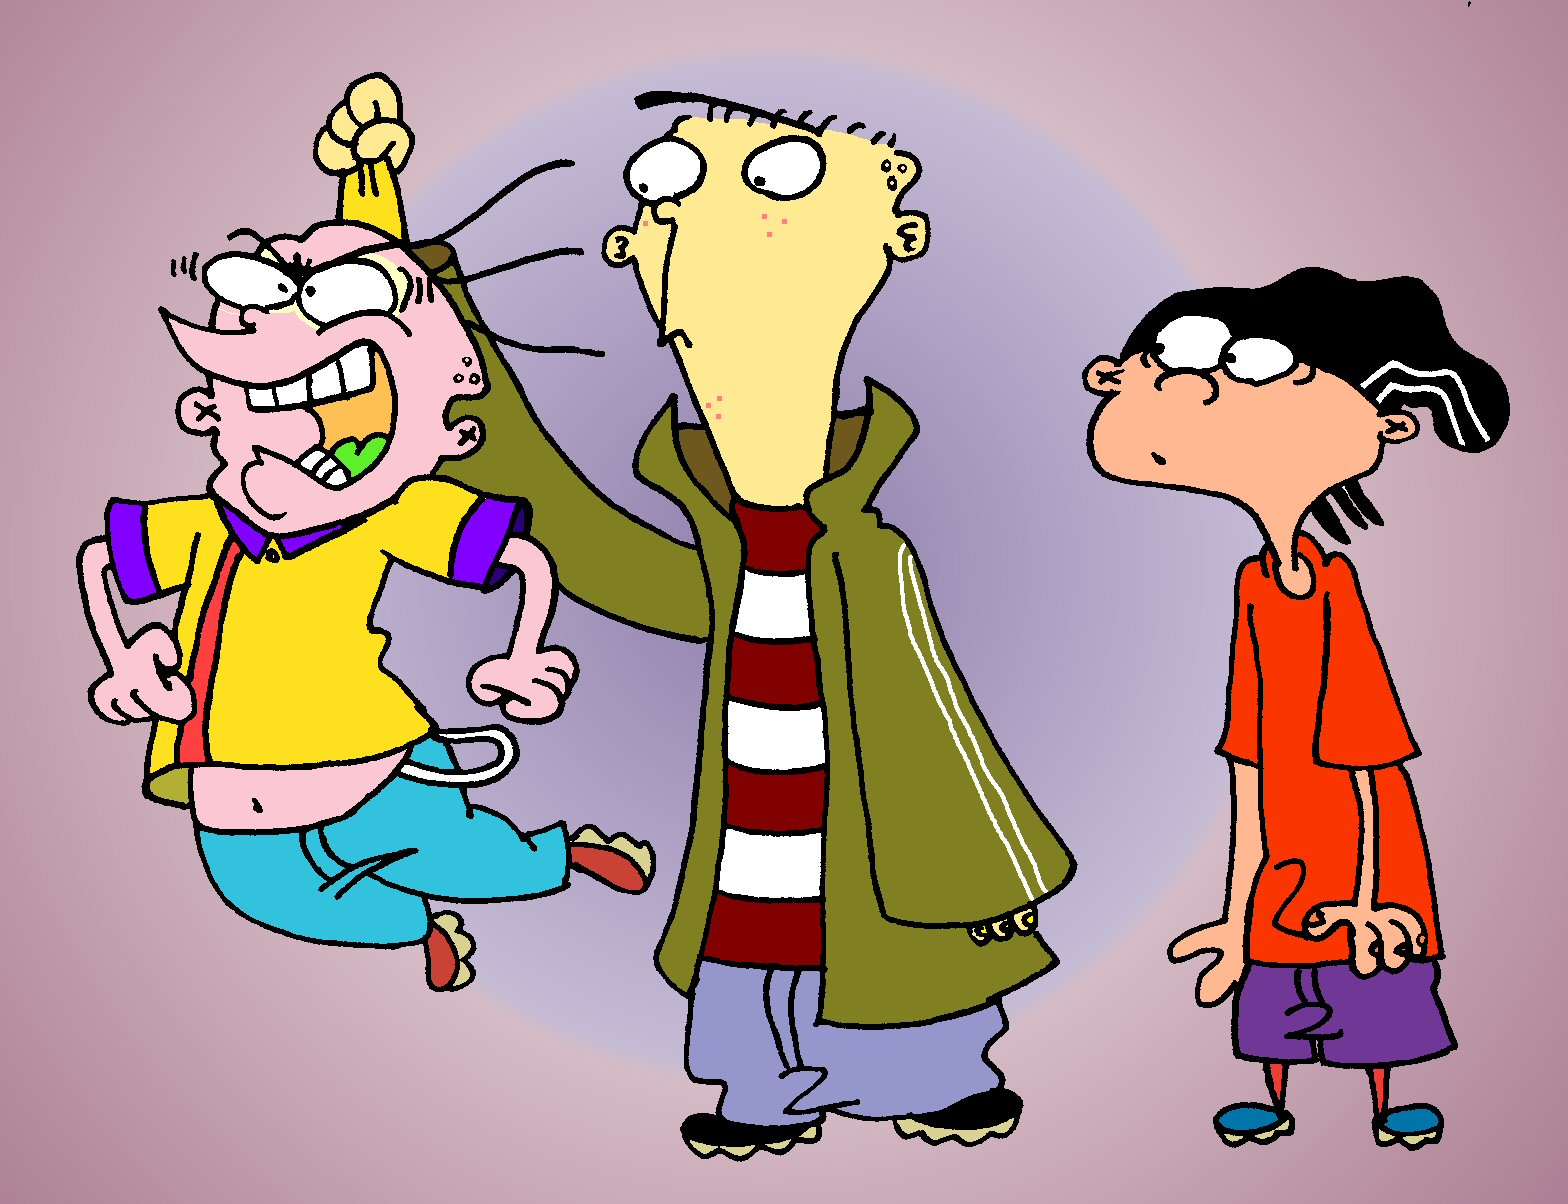 Ed Edd N Eddy Wallpaper Gallery Childhood Cartoons 90s 1429766